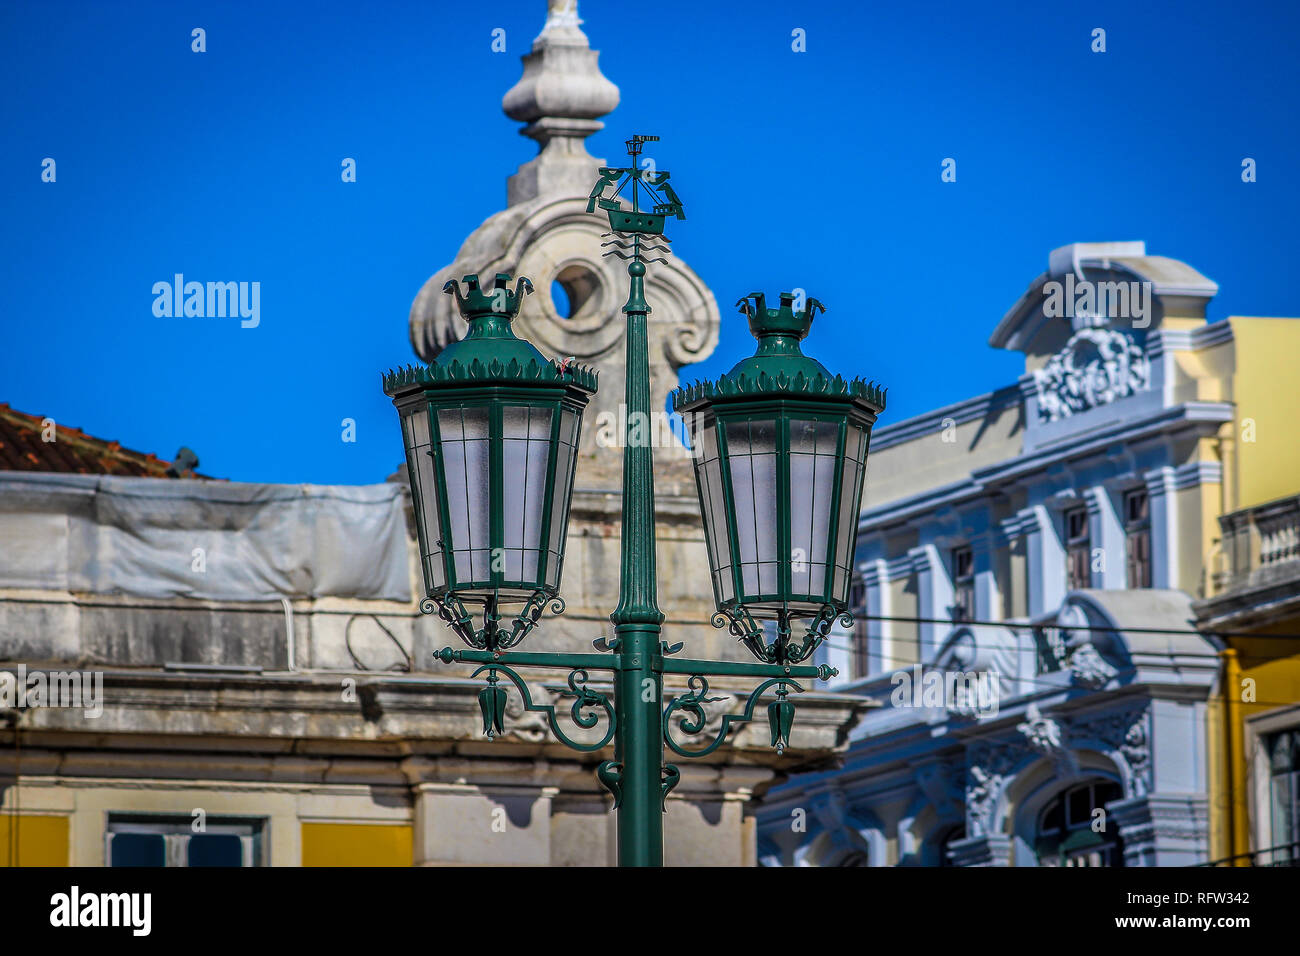 Vintage street lamps on the Commerce square, in Lisbon, Portugal Stock Photo